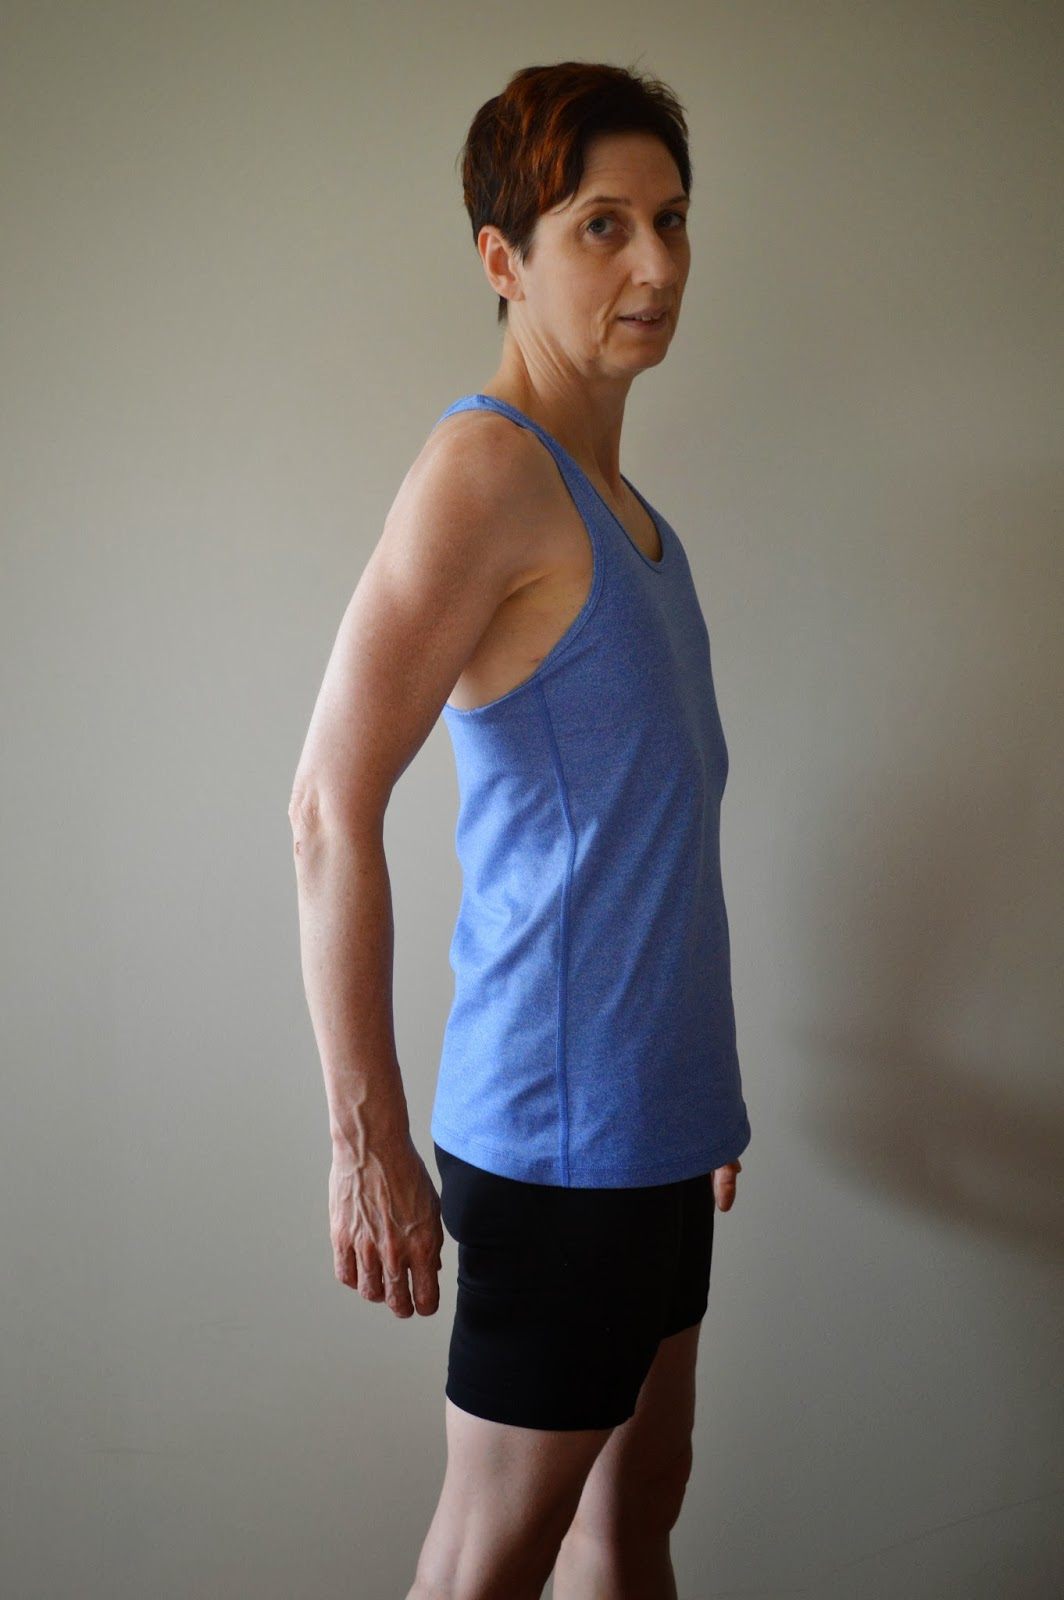 going flat after mastectomy